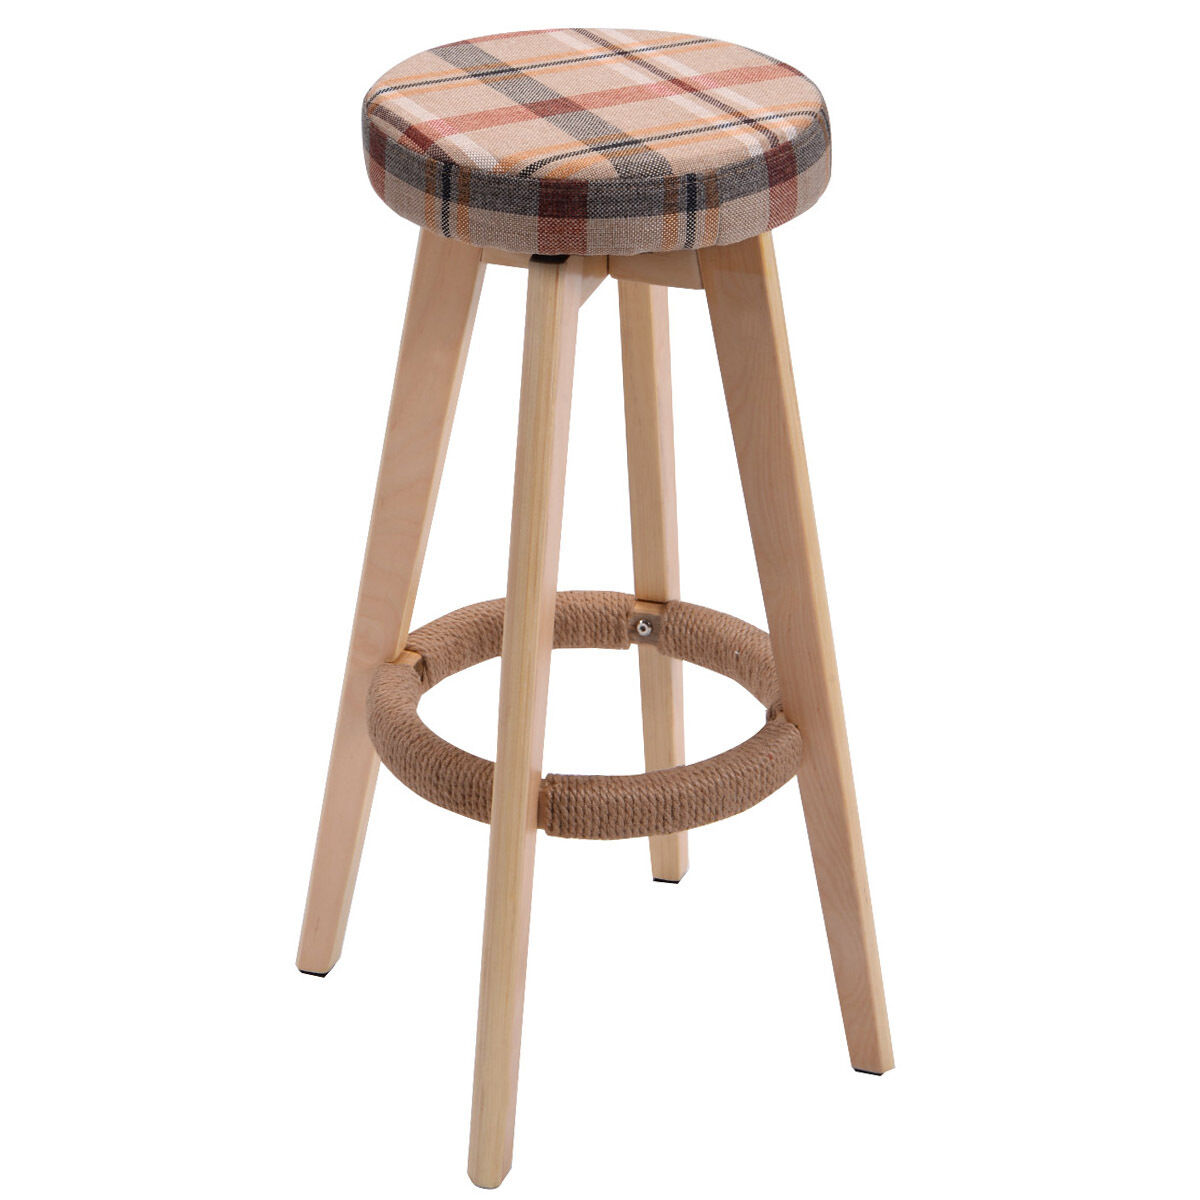 Round Wooden Chair Linen Bar Stool Dining Counter